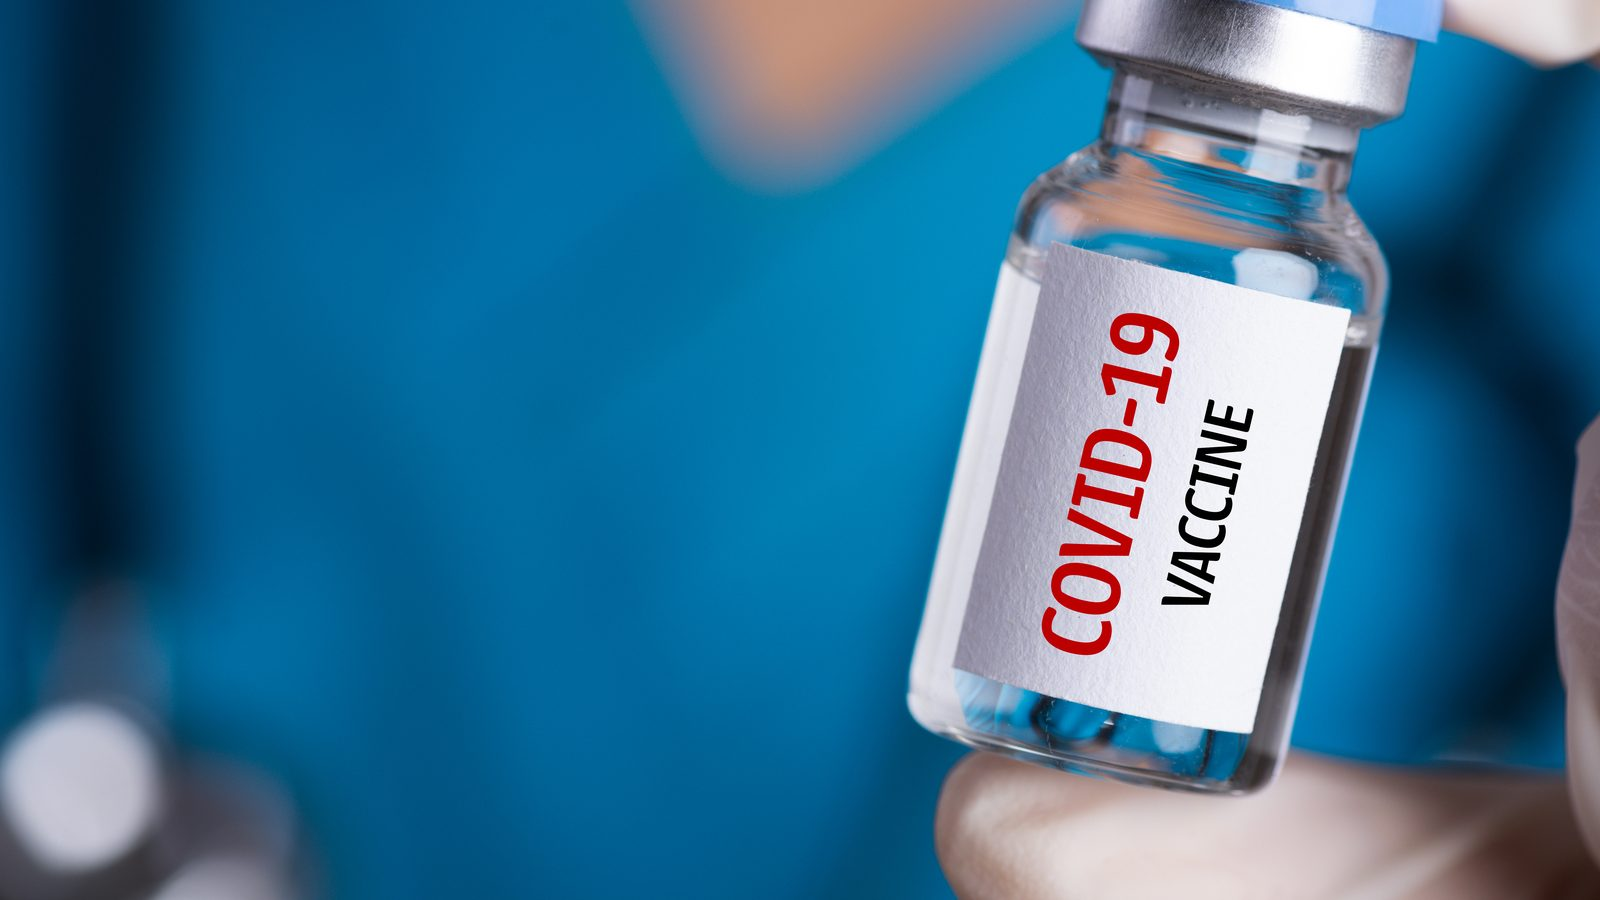 COVID-19 Vaccine Projects by Metro Manila Cities